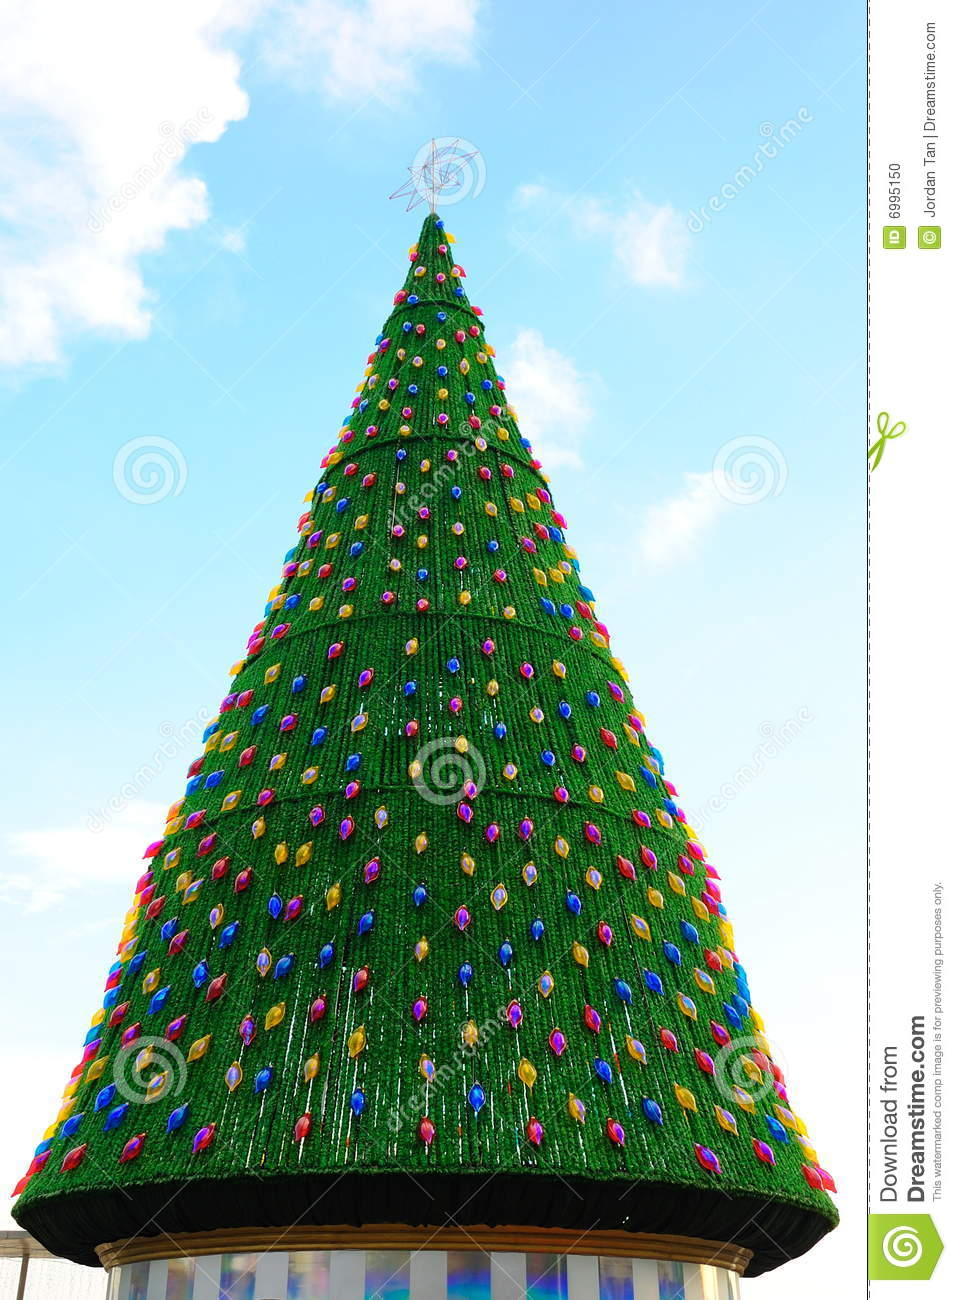 big christmas tree - How To Decorate A Big Christmas Tree